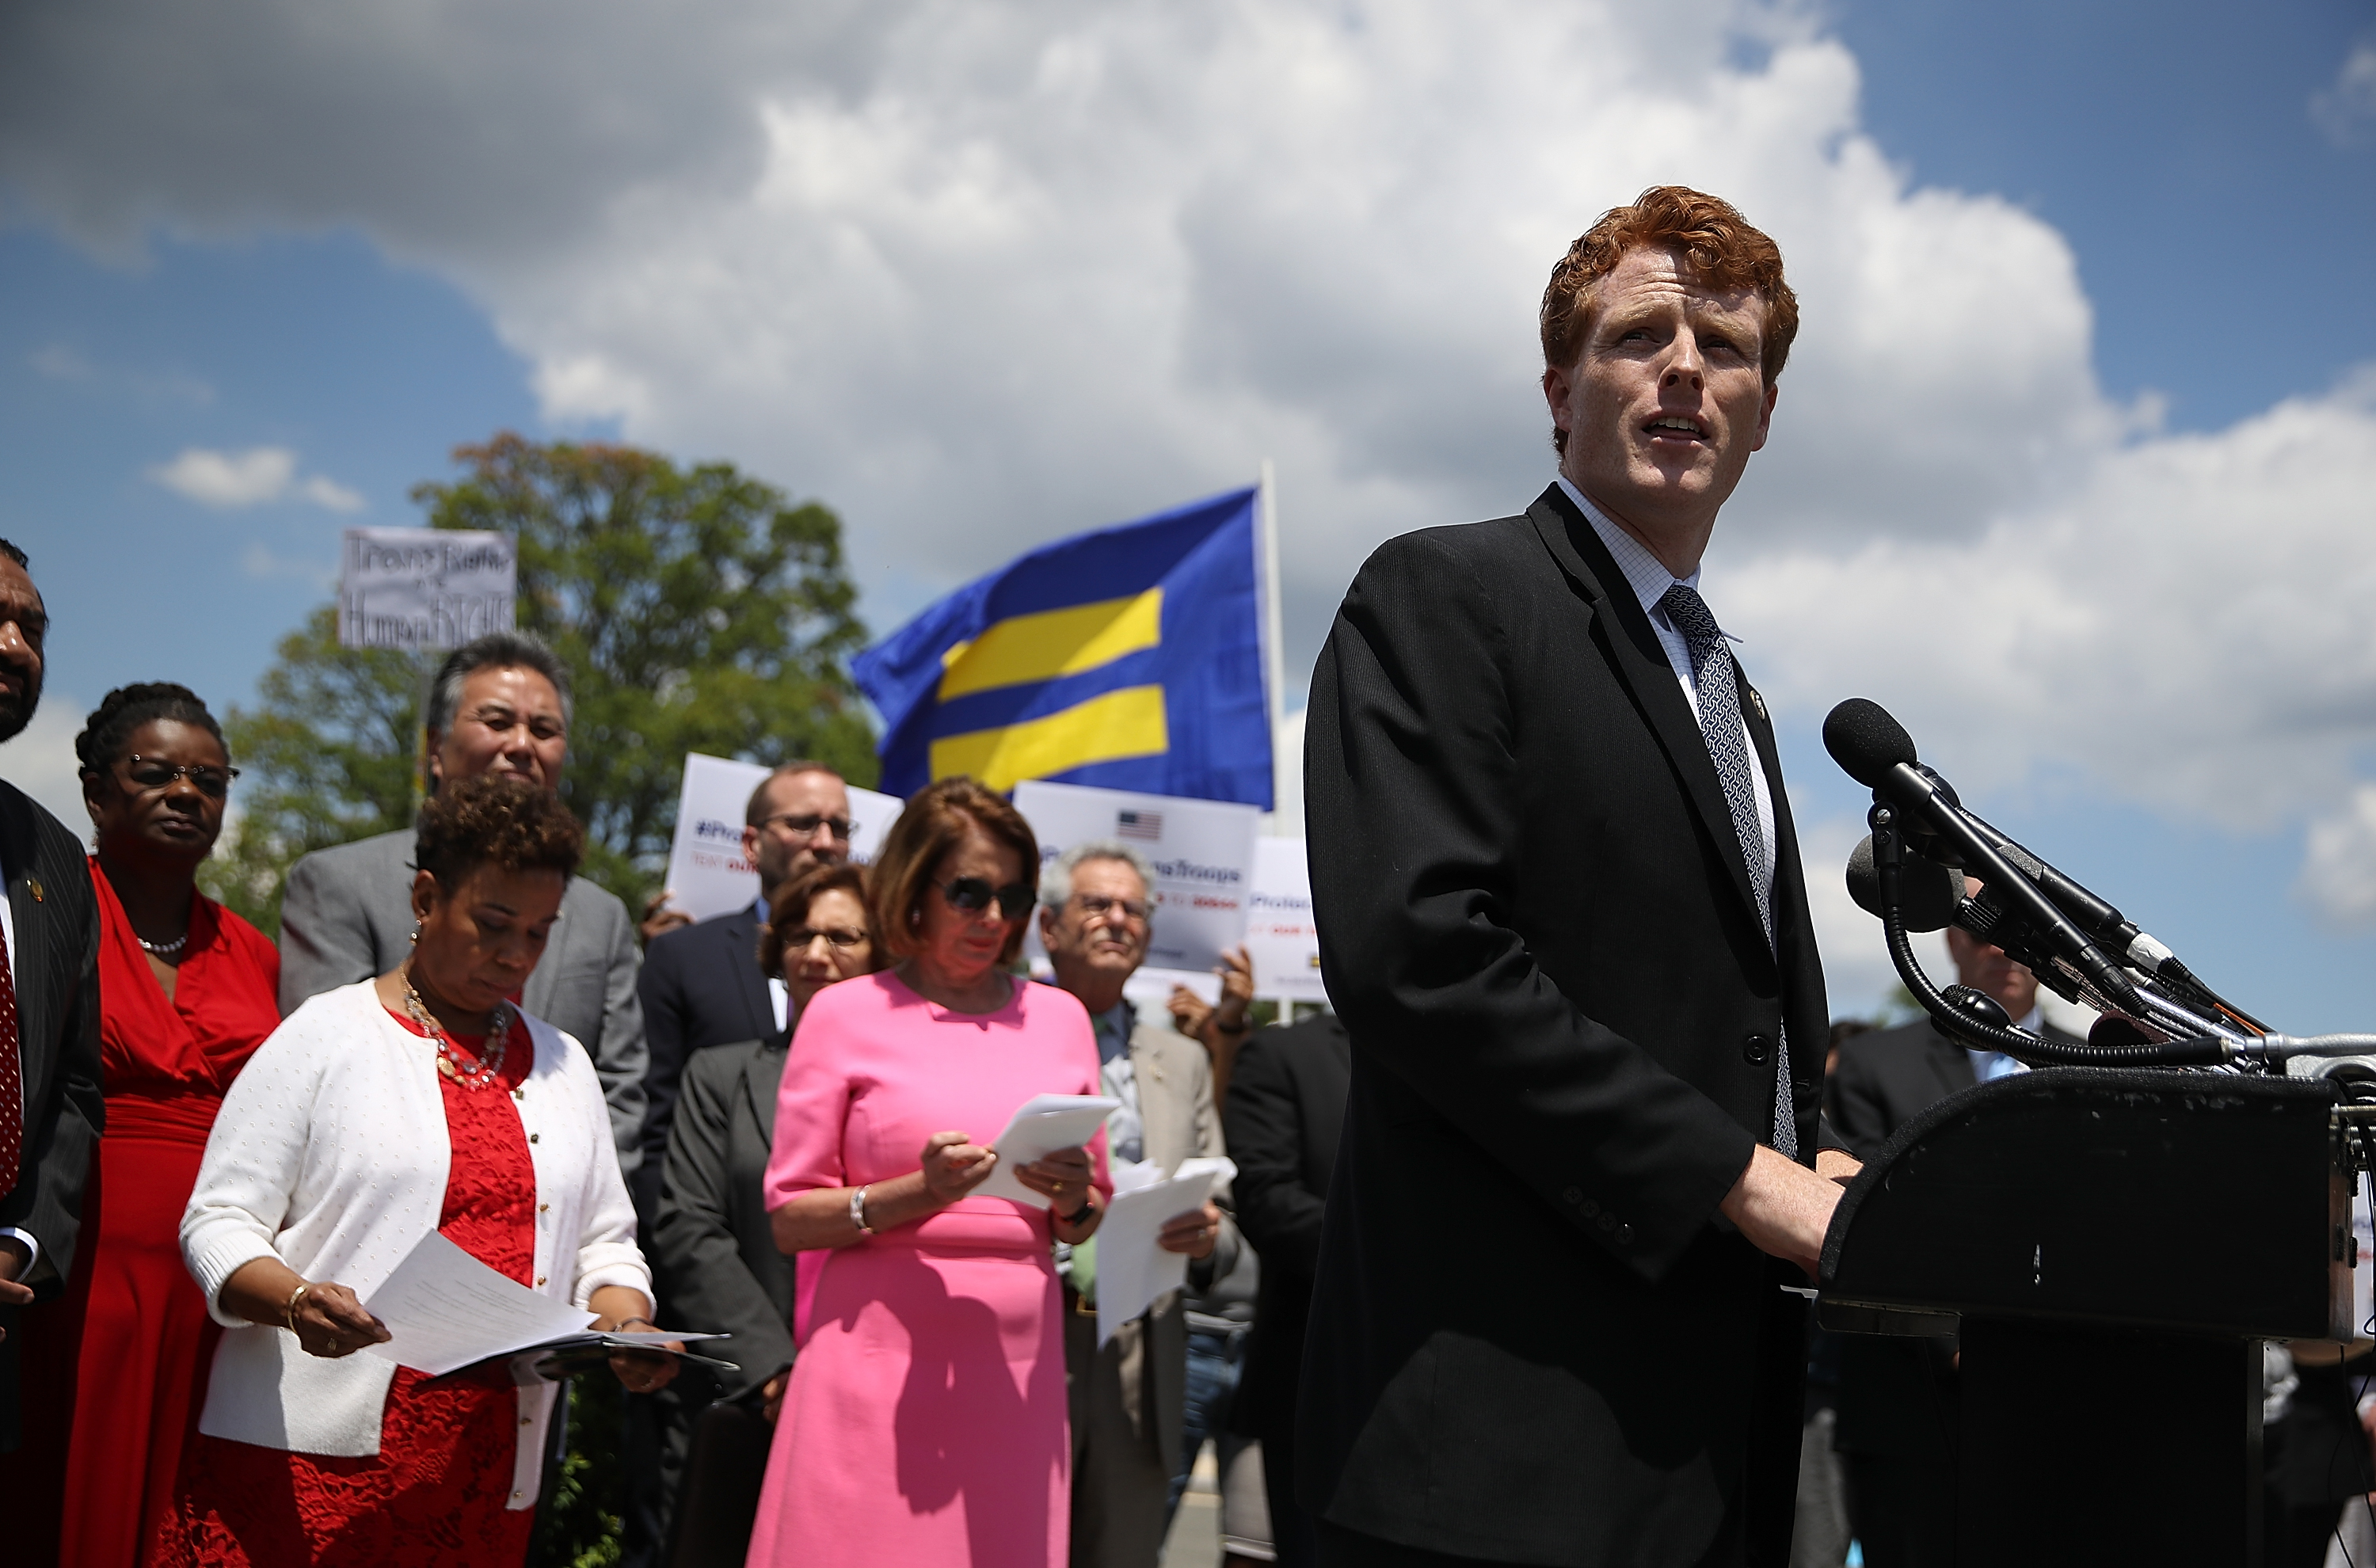 Who is Joe Kennedy? The congressman will give the Democratic Party's State of the Union response